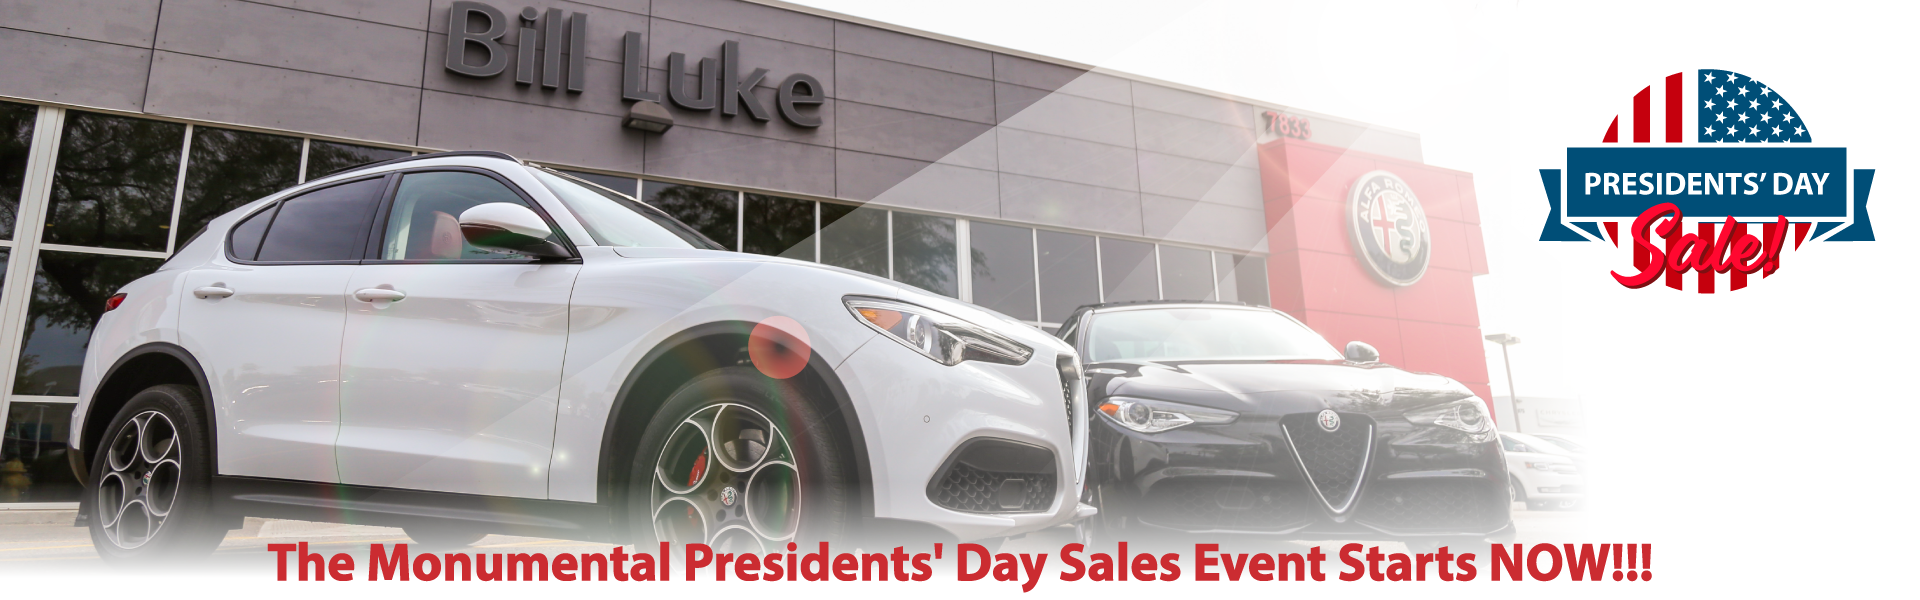 Monumental Presidents' Day Sales Event Starts NOW At Bill Luke Alfa Romeo of Tempe